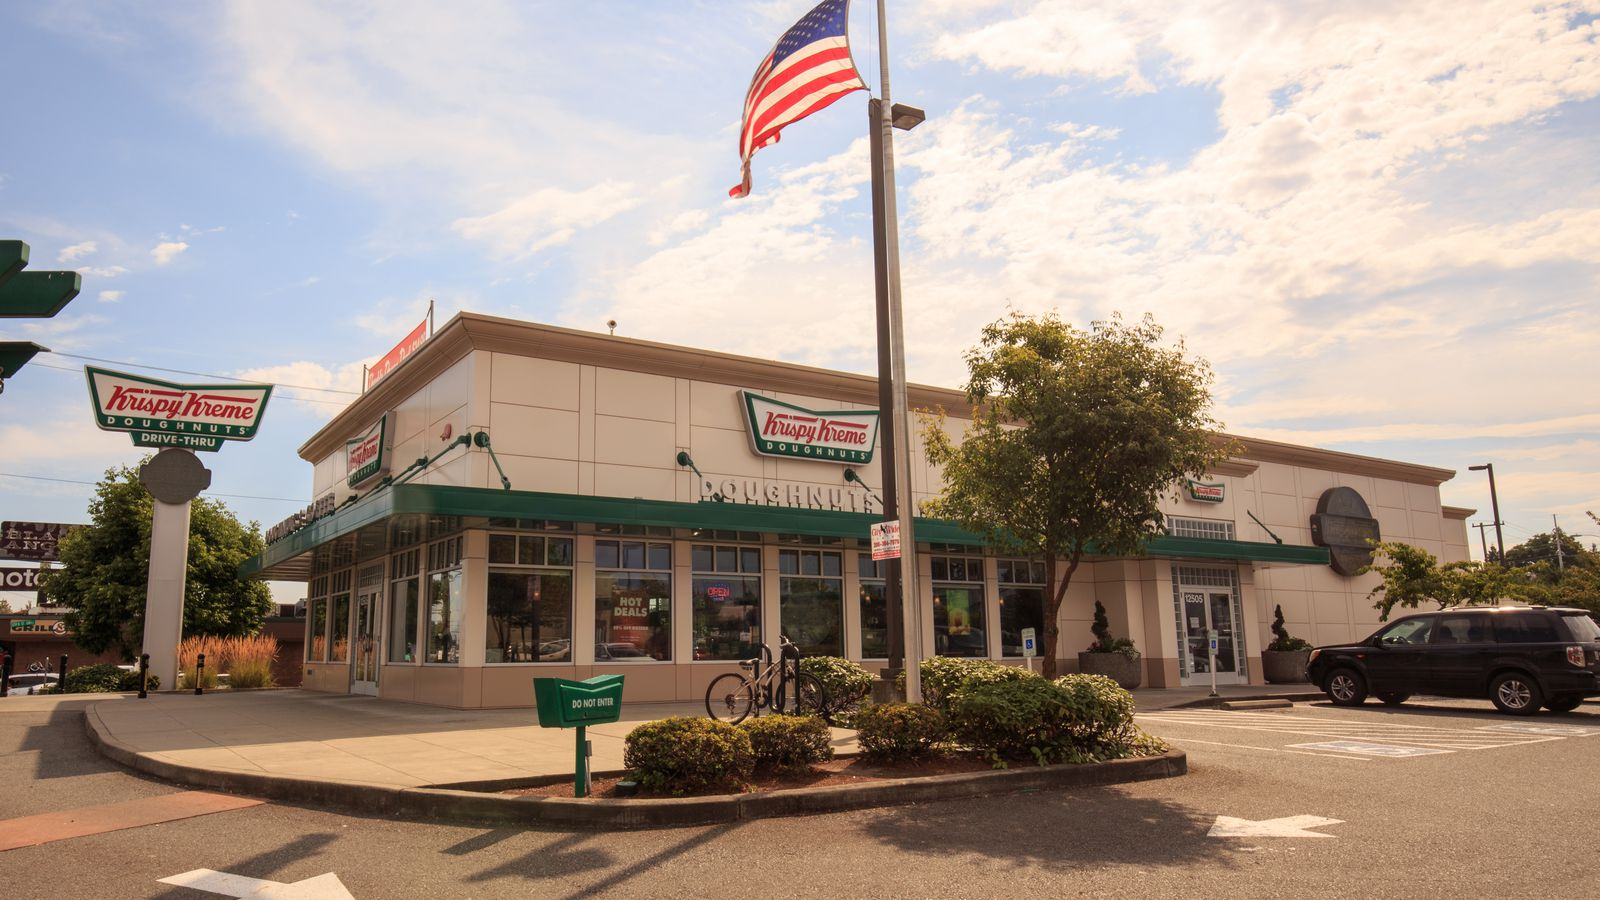 Krispy Kreme Pacific Northwest is the Area Developer for Krispy Kreme in Washington, Oregon, Hawaii, and British Columbia, Canada.